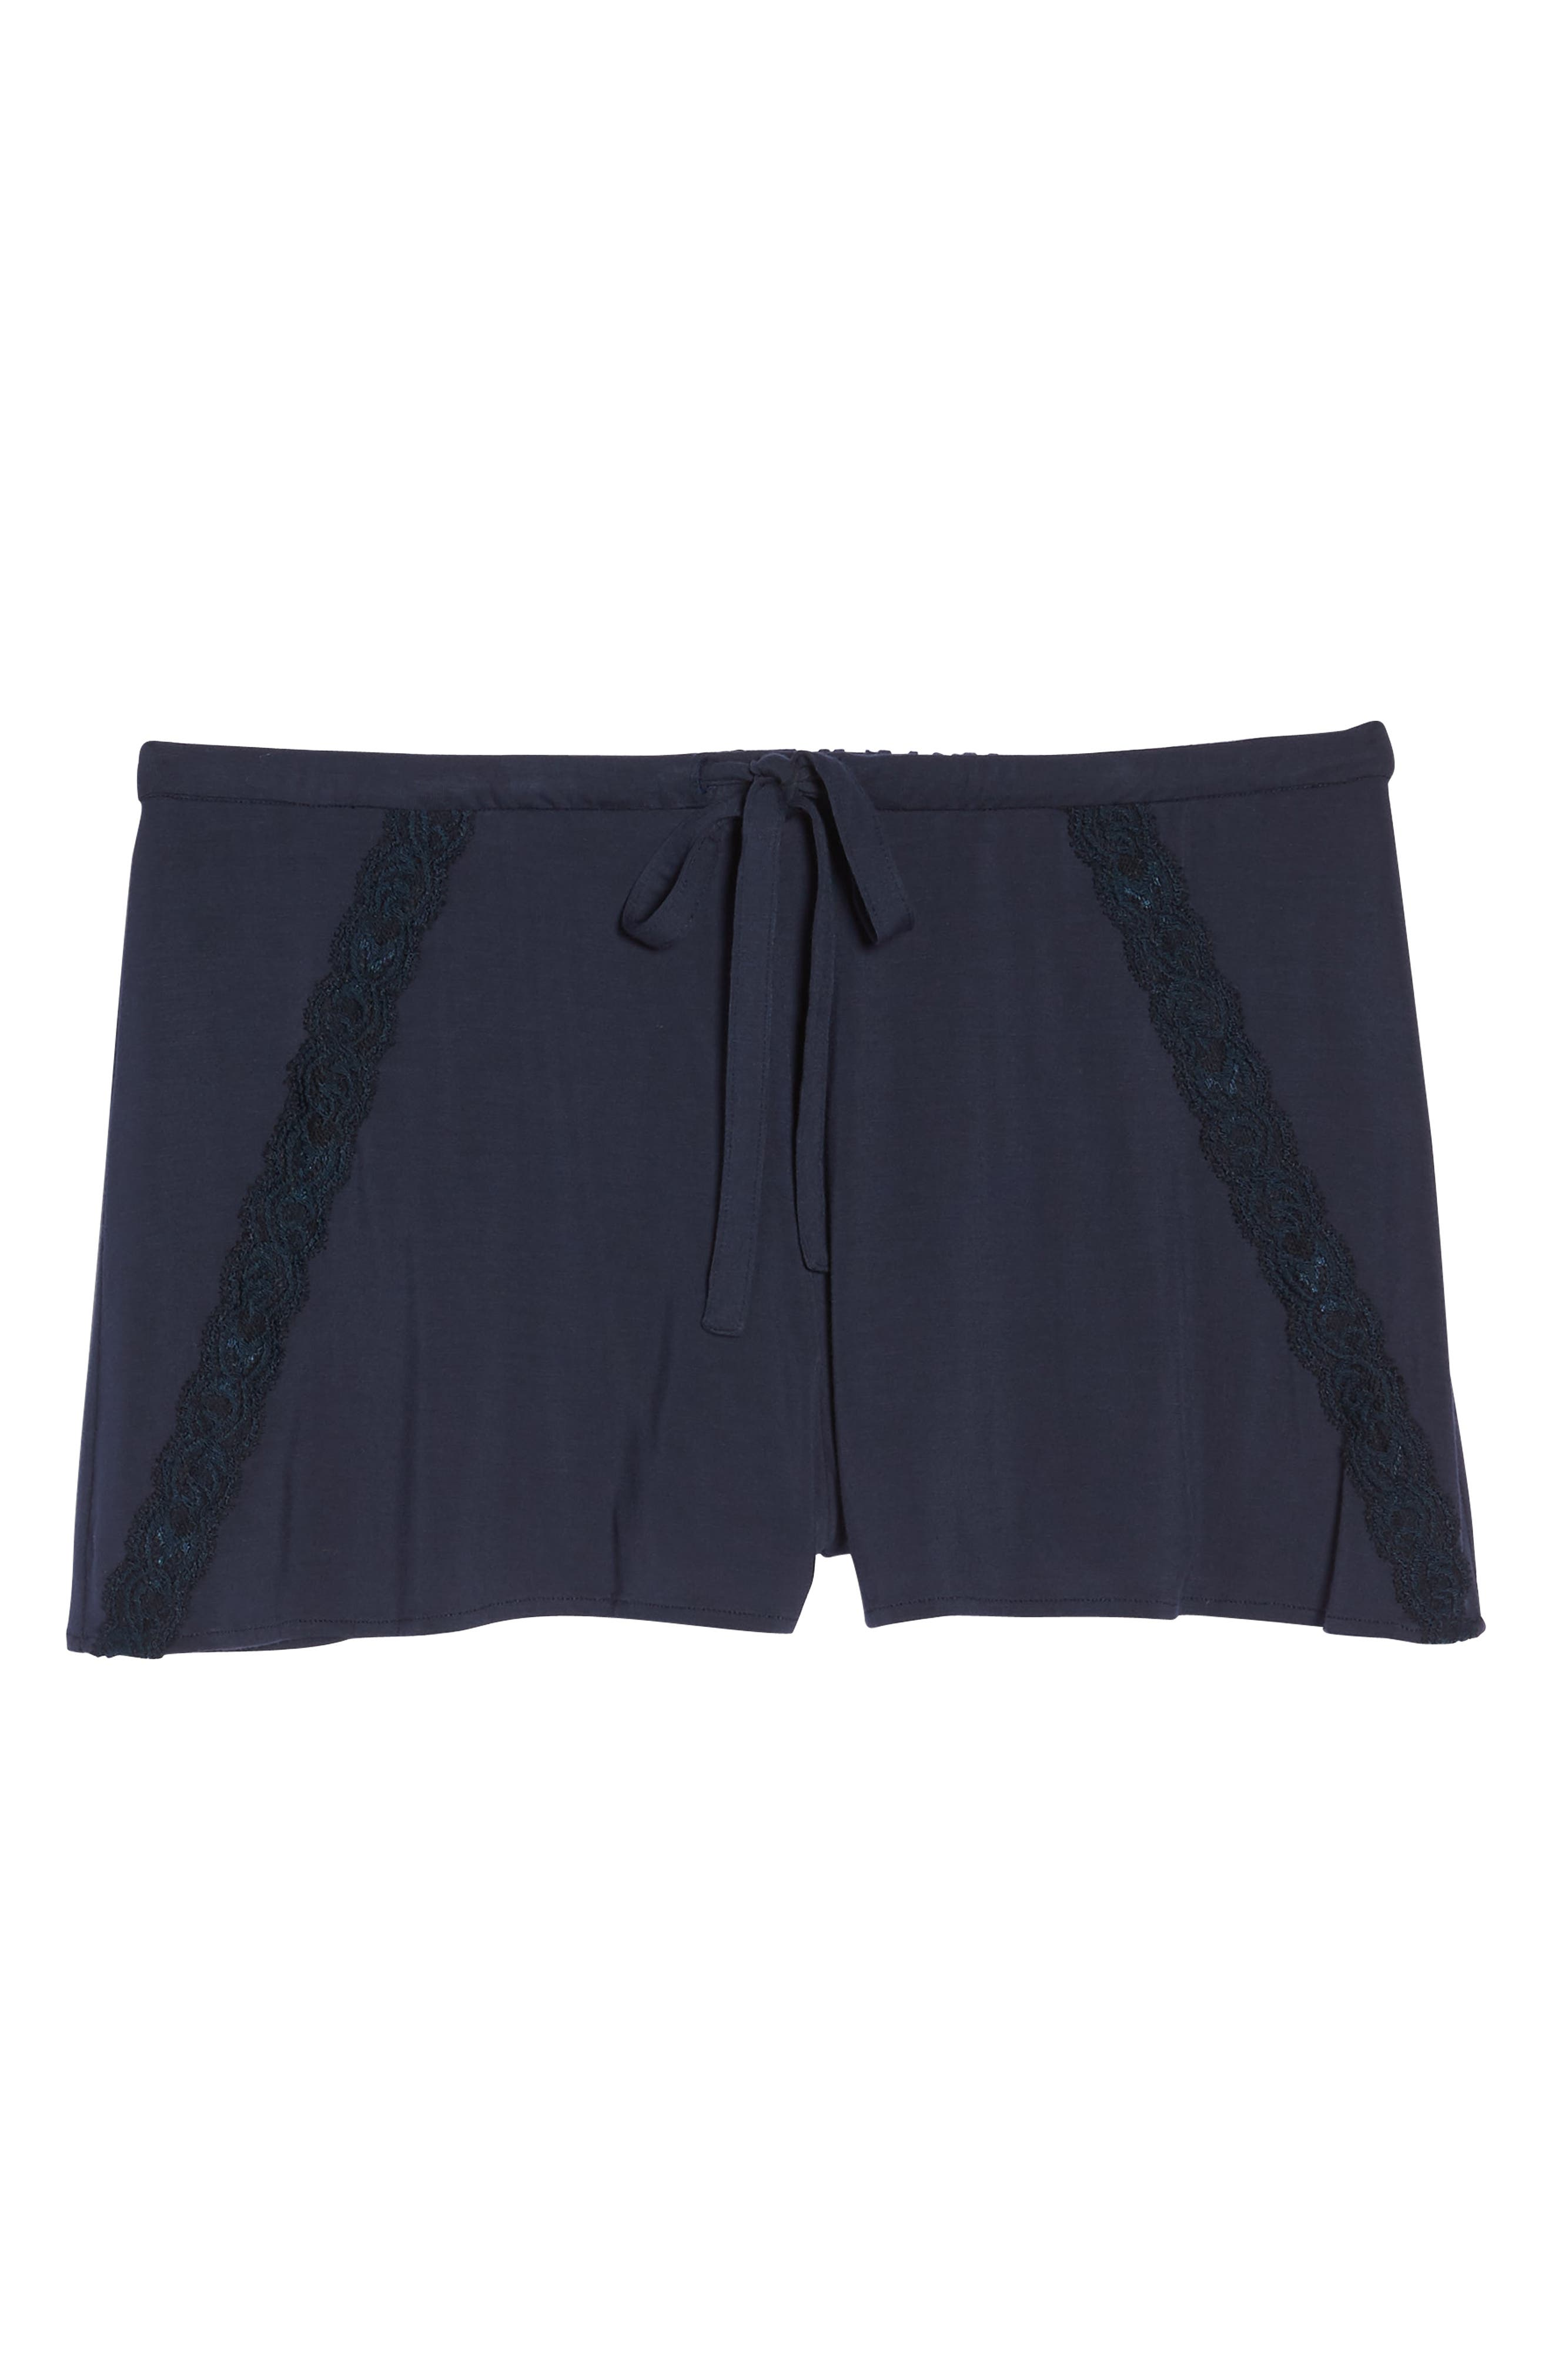 Feathers Essential Pajama Shorts,                             Alternate thumbnail 6, color,                             438